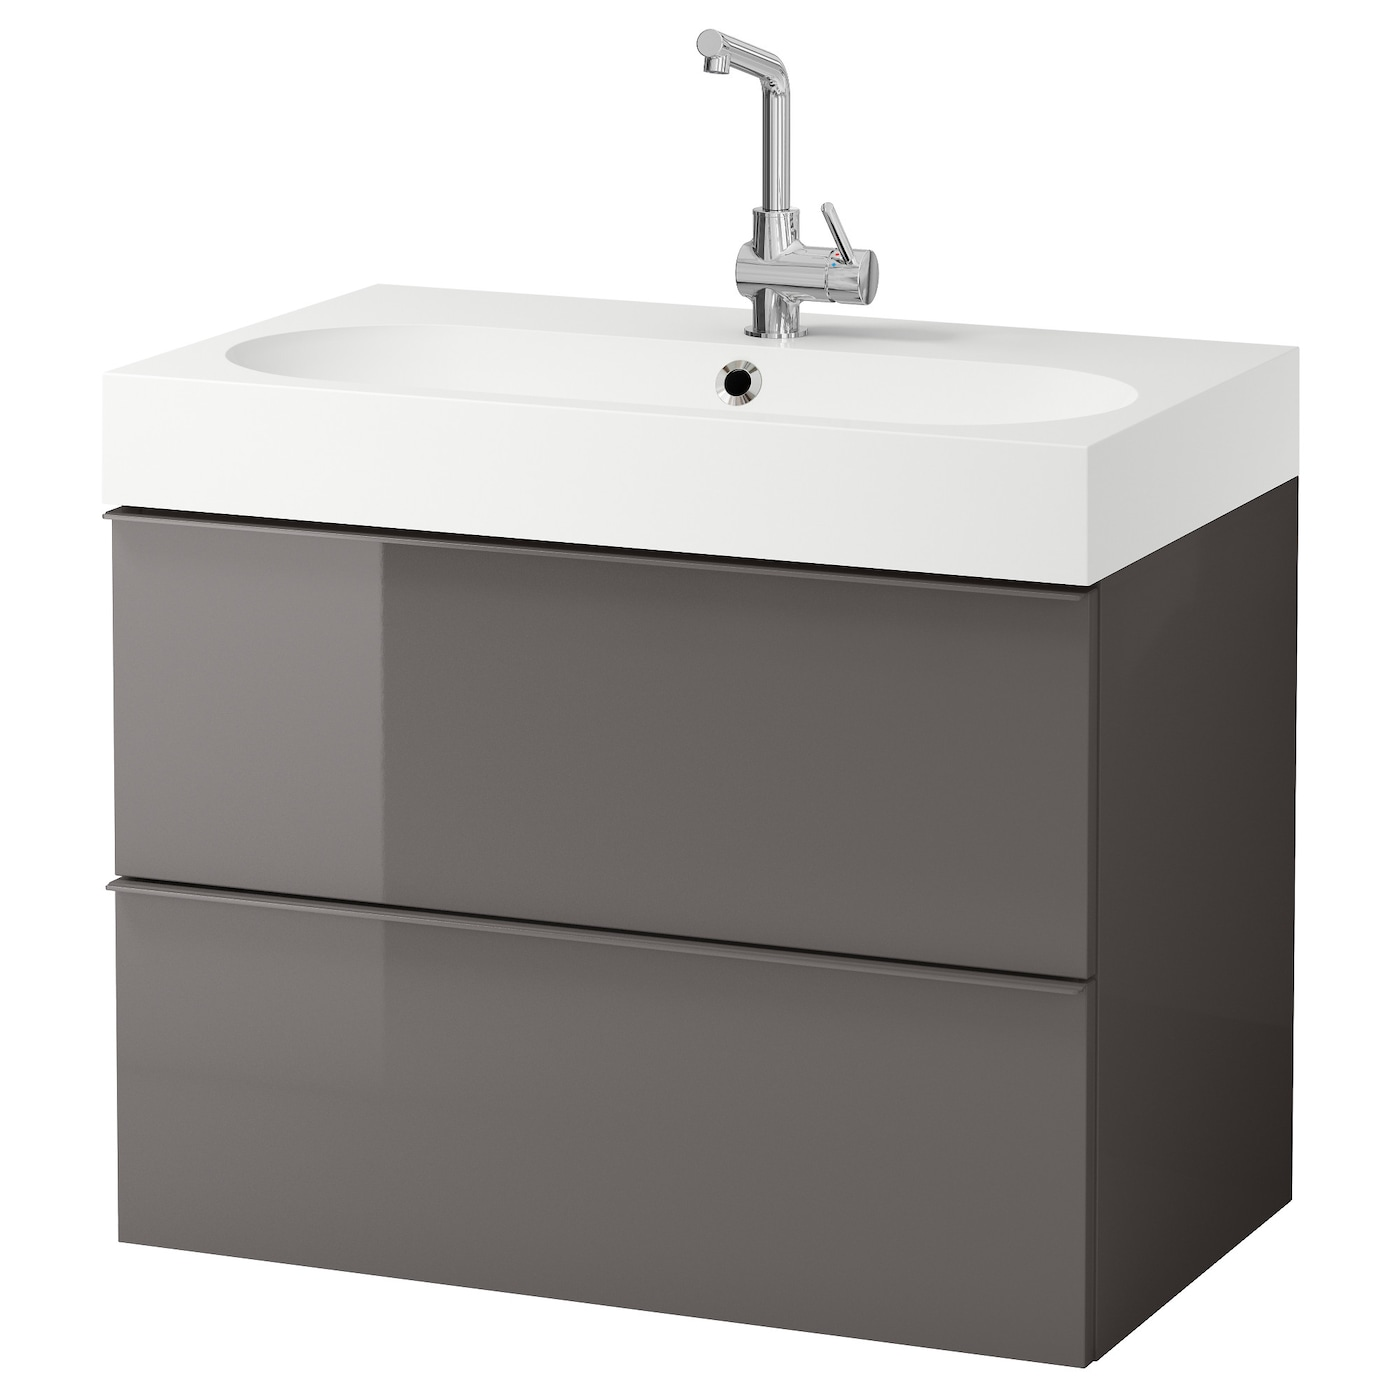 Vanity units sink cabinets wash stands ikea for Meubles salle de bain ikea godmorgon